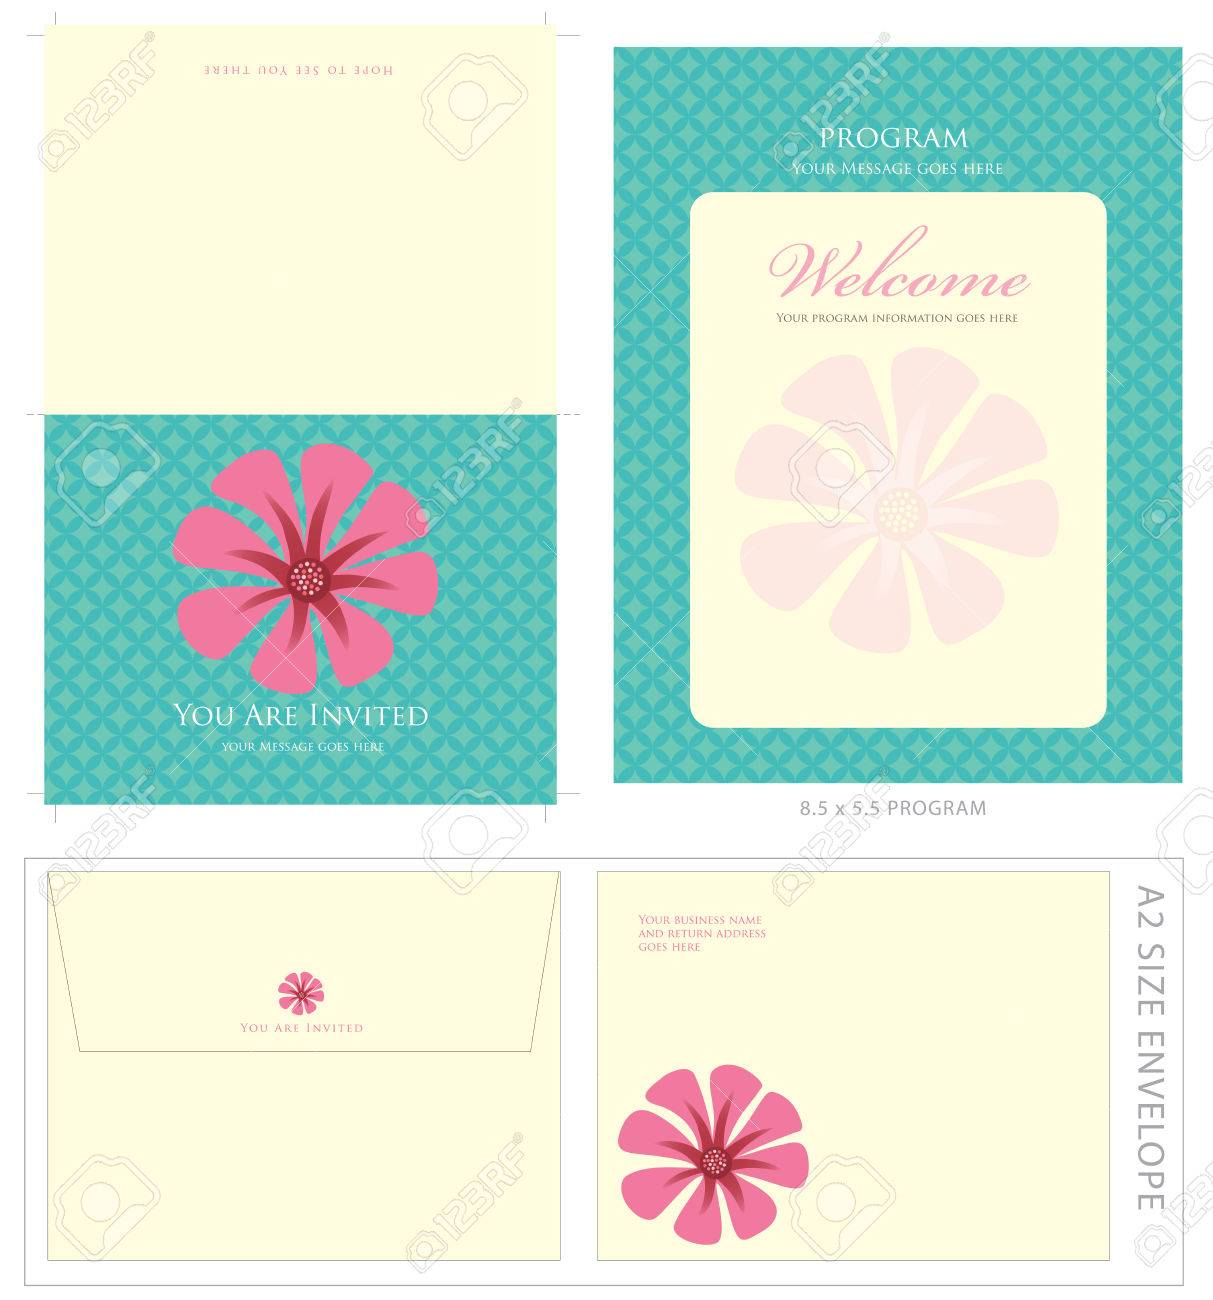 Special Event Templates (includes A2 invite with cropmarks & bleeds, A2 envelope setup and 8.5x5.5 program) Stock Vector - 4775975